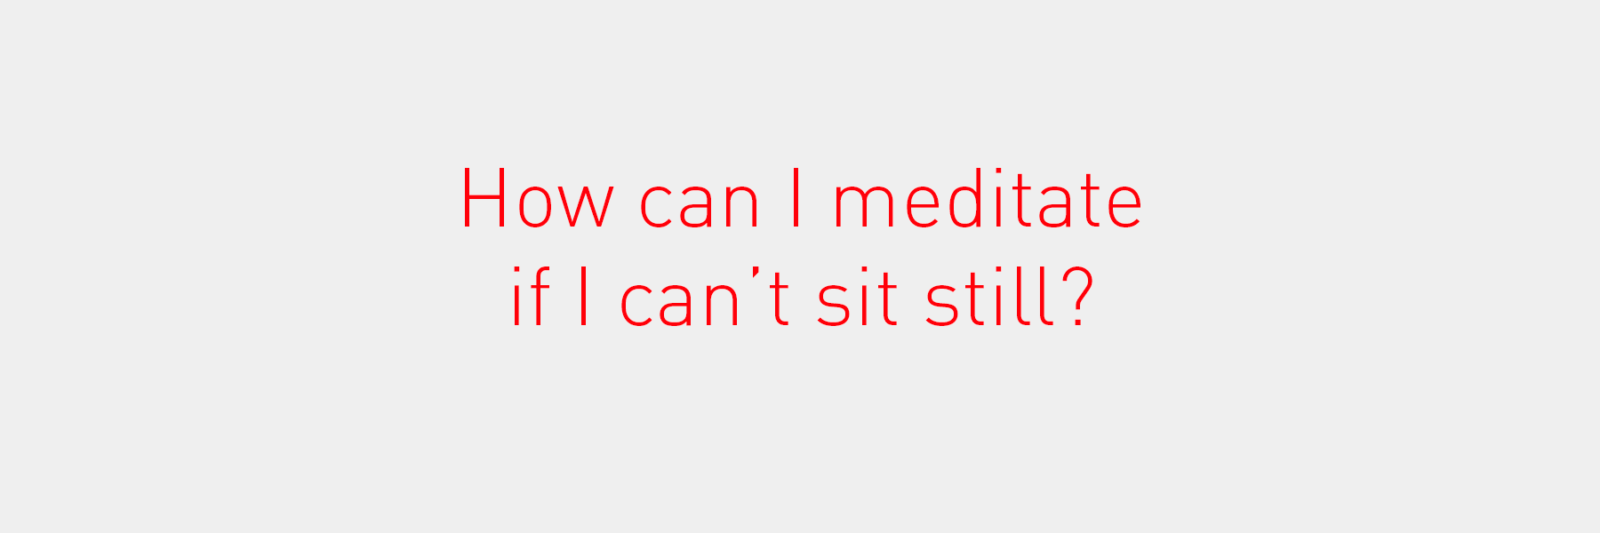 How can I meditate if I can't sit still?